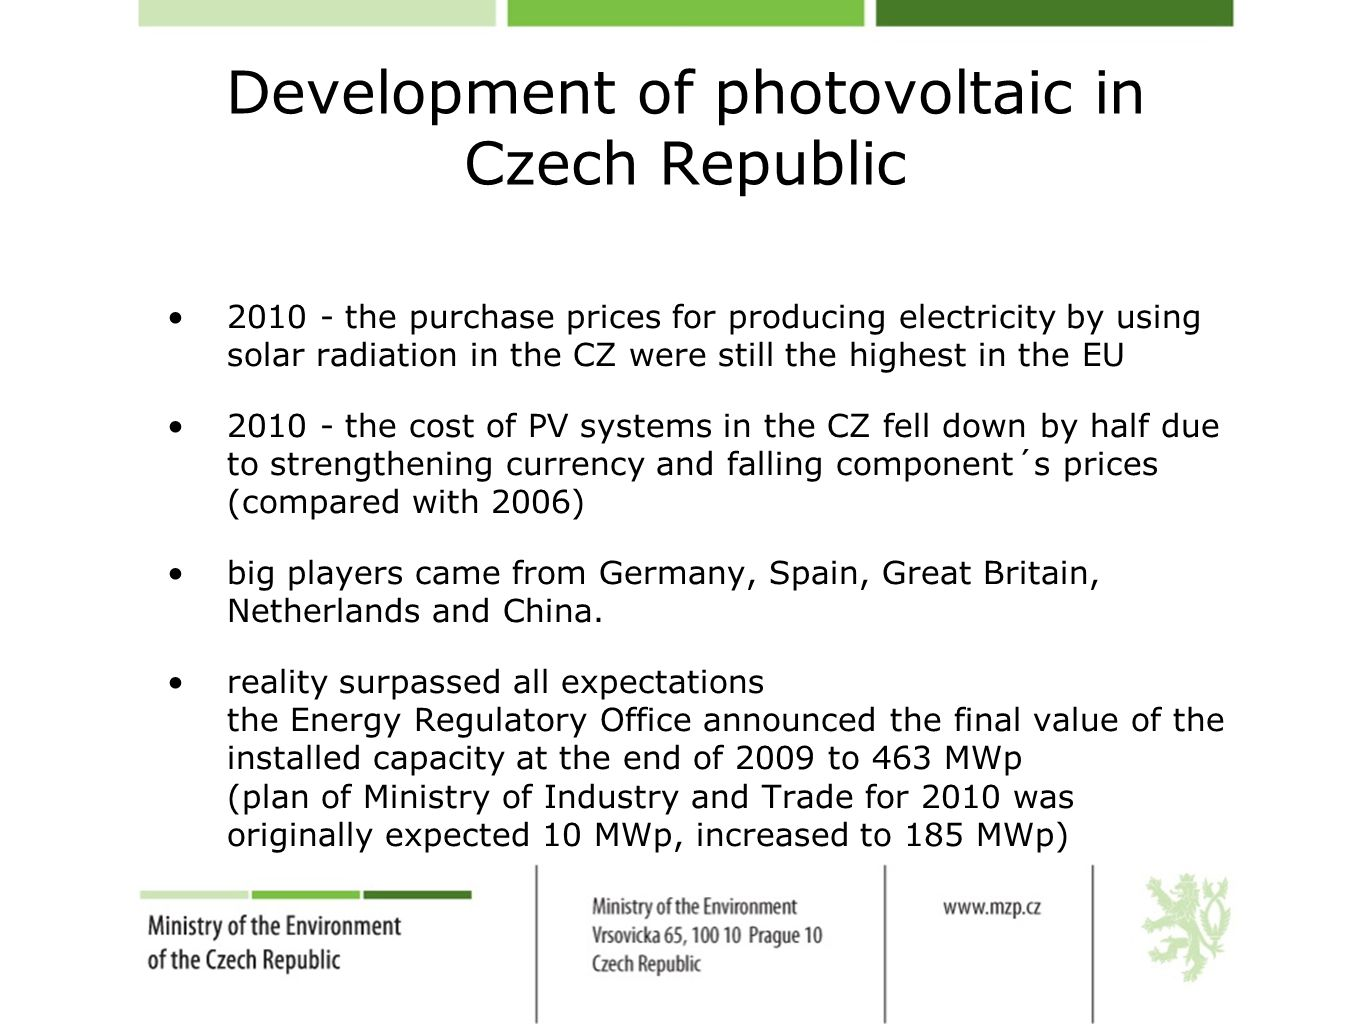 Development of photovoltaic in Czech Republic 2010 - the purchase prices for producing electricity by using solar radiation in the CZ were still the highest in the EU 2010 - the cost of PV systems in the CZ fell down by half due to strengthening currency and falling component´s prices (compared with 2006) big players came from Germany, Spain, Great Britain, Netherlands and China.